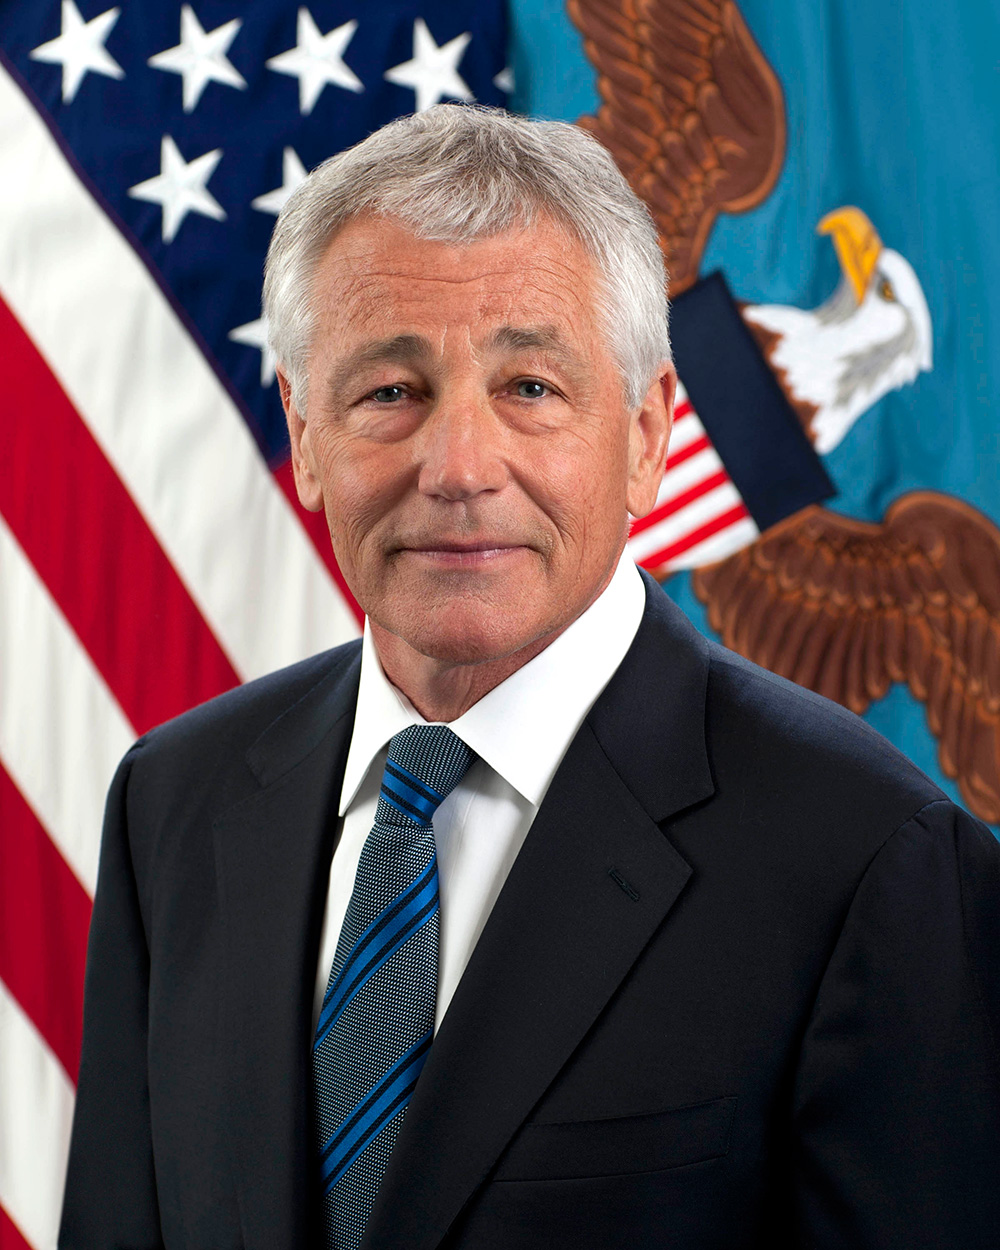 hires_022713130333_Hagel_Chuck_Portrait2